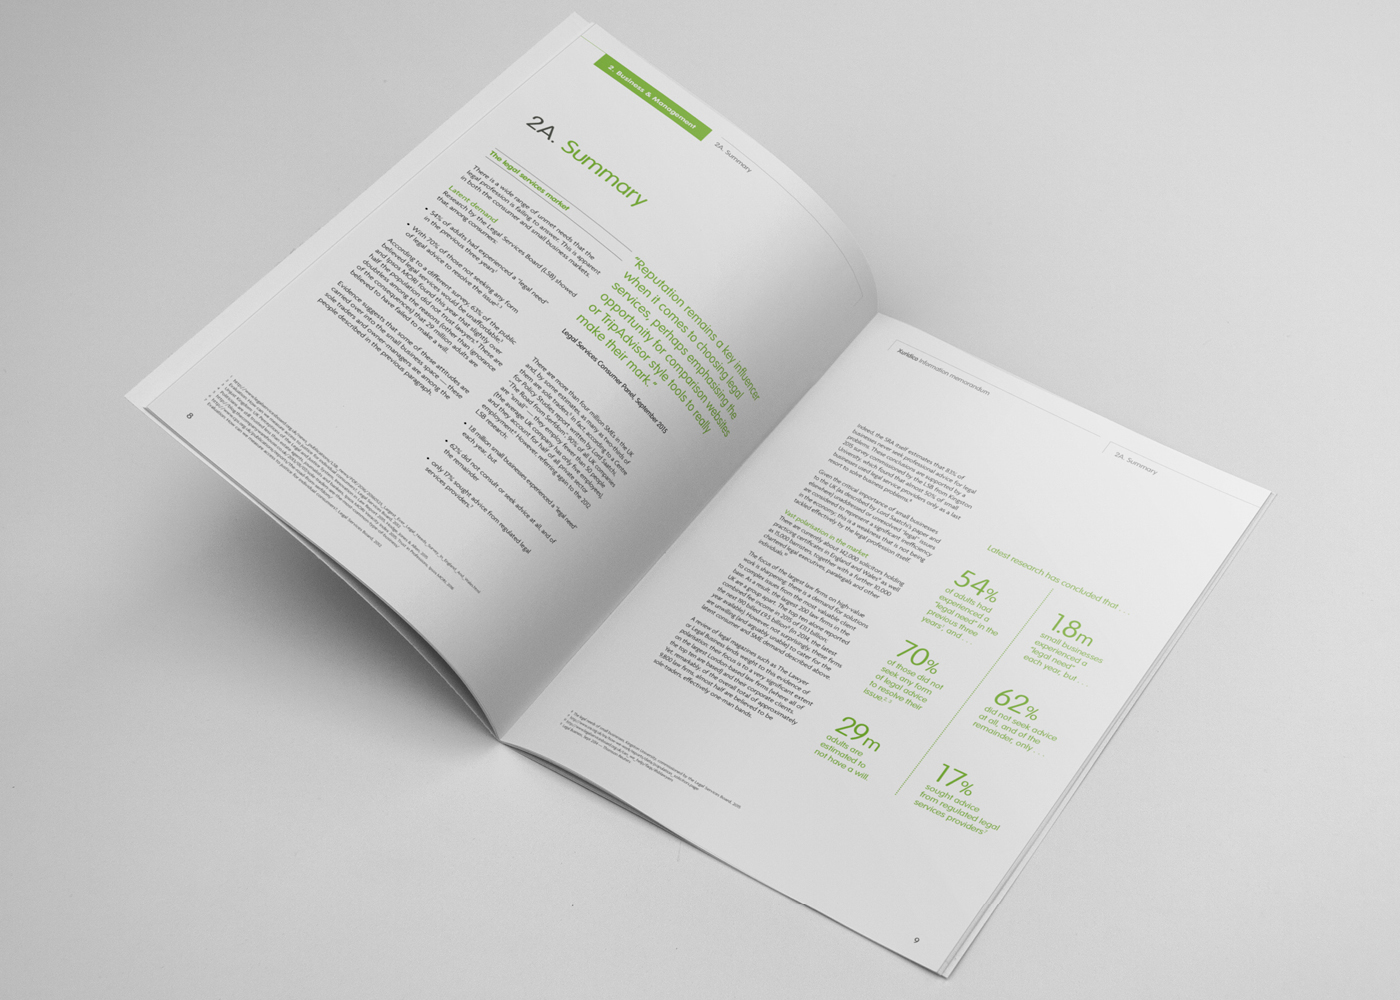 rommel lajom design for an investors memorandum for myideallawyer com a price comparison website offering affordable legal services to the millions of people in the uk